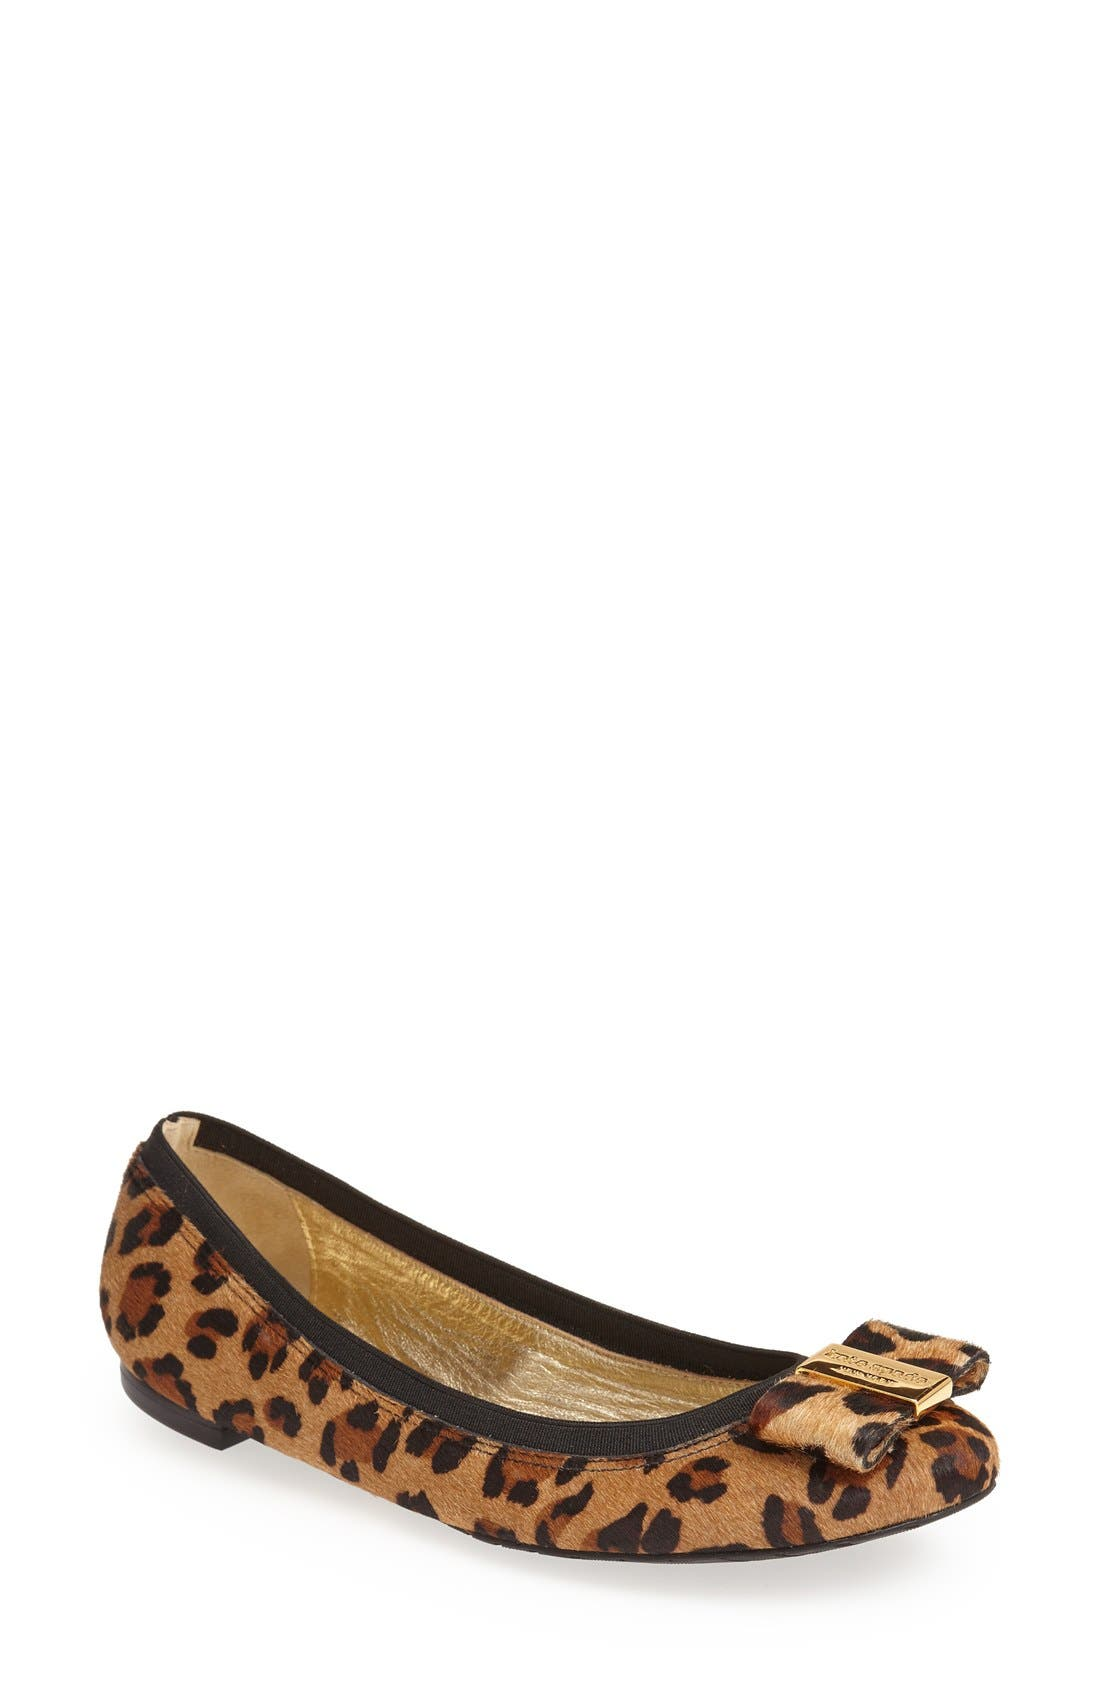 Main Image - kate spade new york 'tock' calf hair flat (Women)